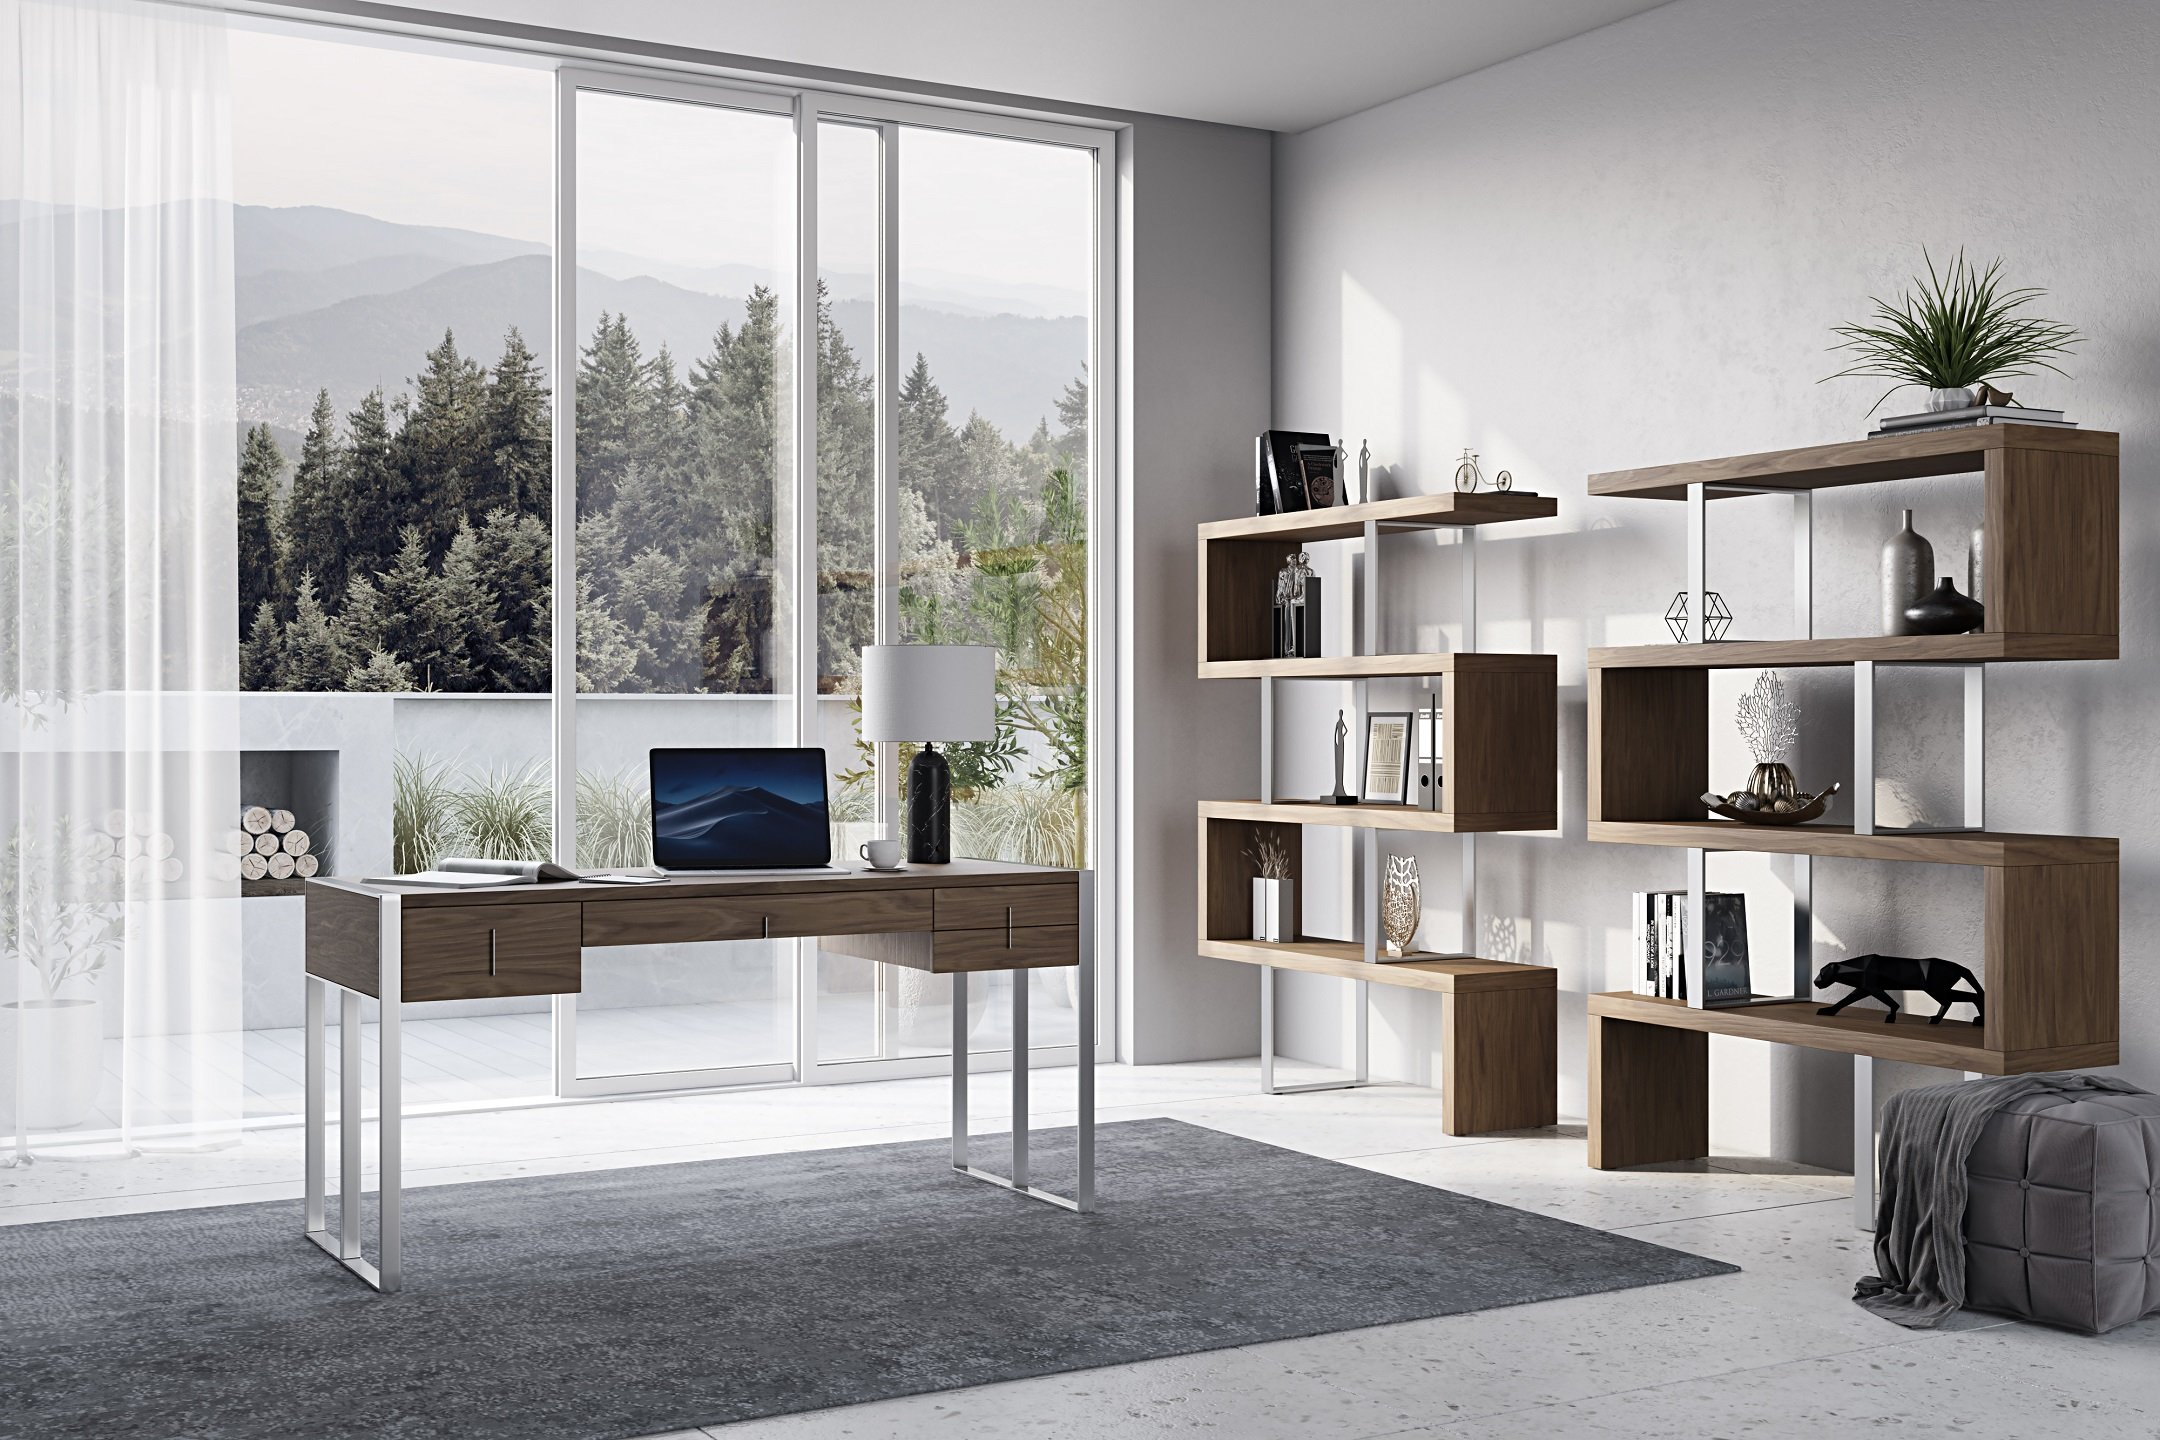 3D Visualization of Home Office with Modern Furniture